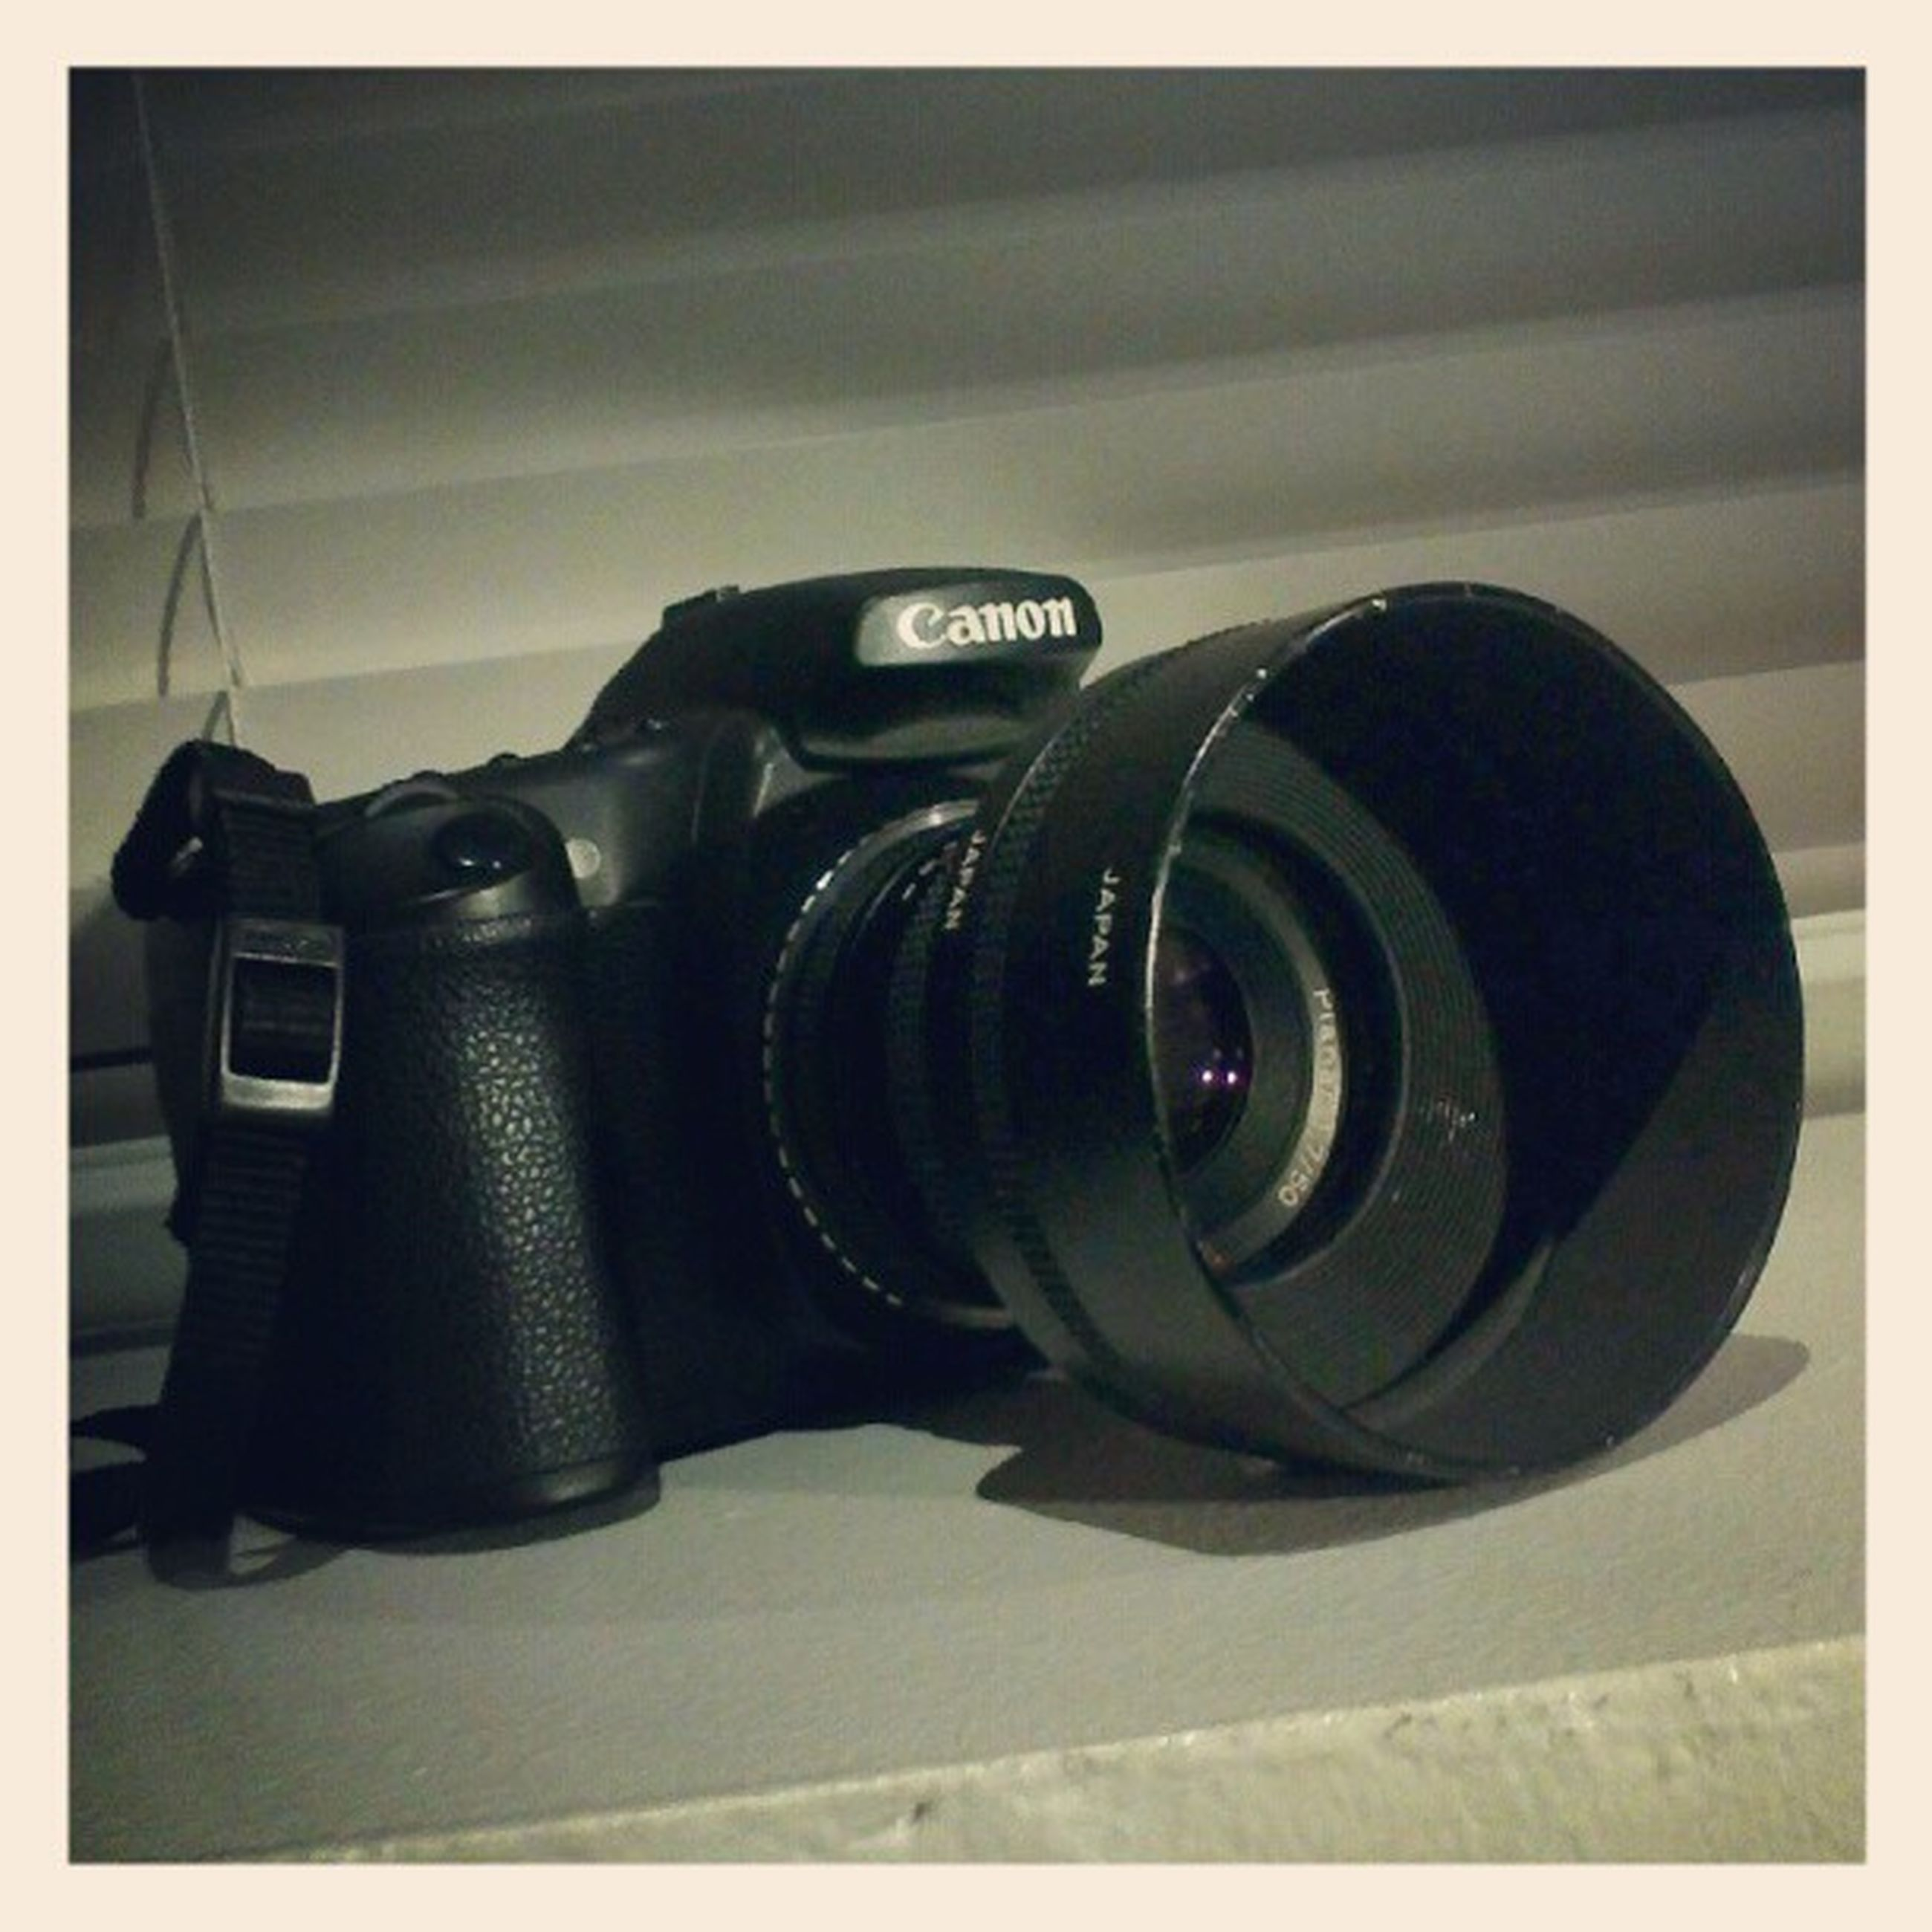 technology, close-up, photography themes, retro styled, camera - photographic equipment, indoors, old-fashioned, auto post production filter, transfer print, metal, still life, equipment, no people, focus on foreground, machine part, single object, photographing, communication, digital camera, machinery